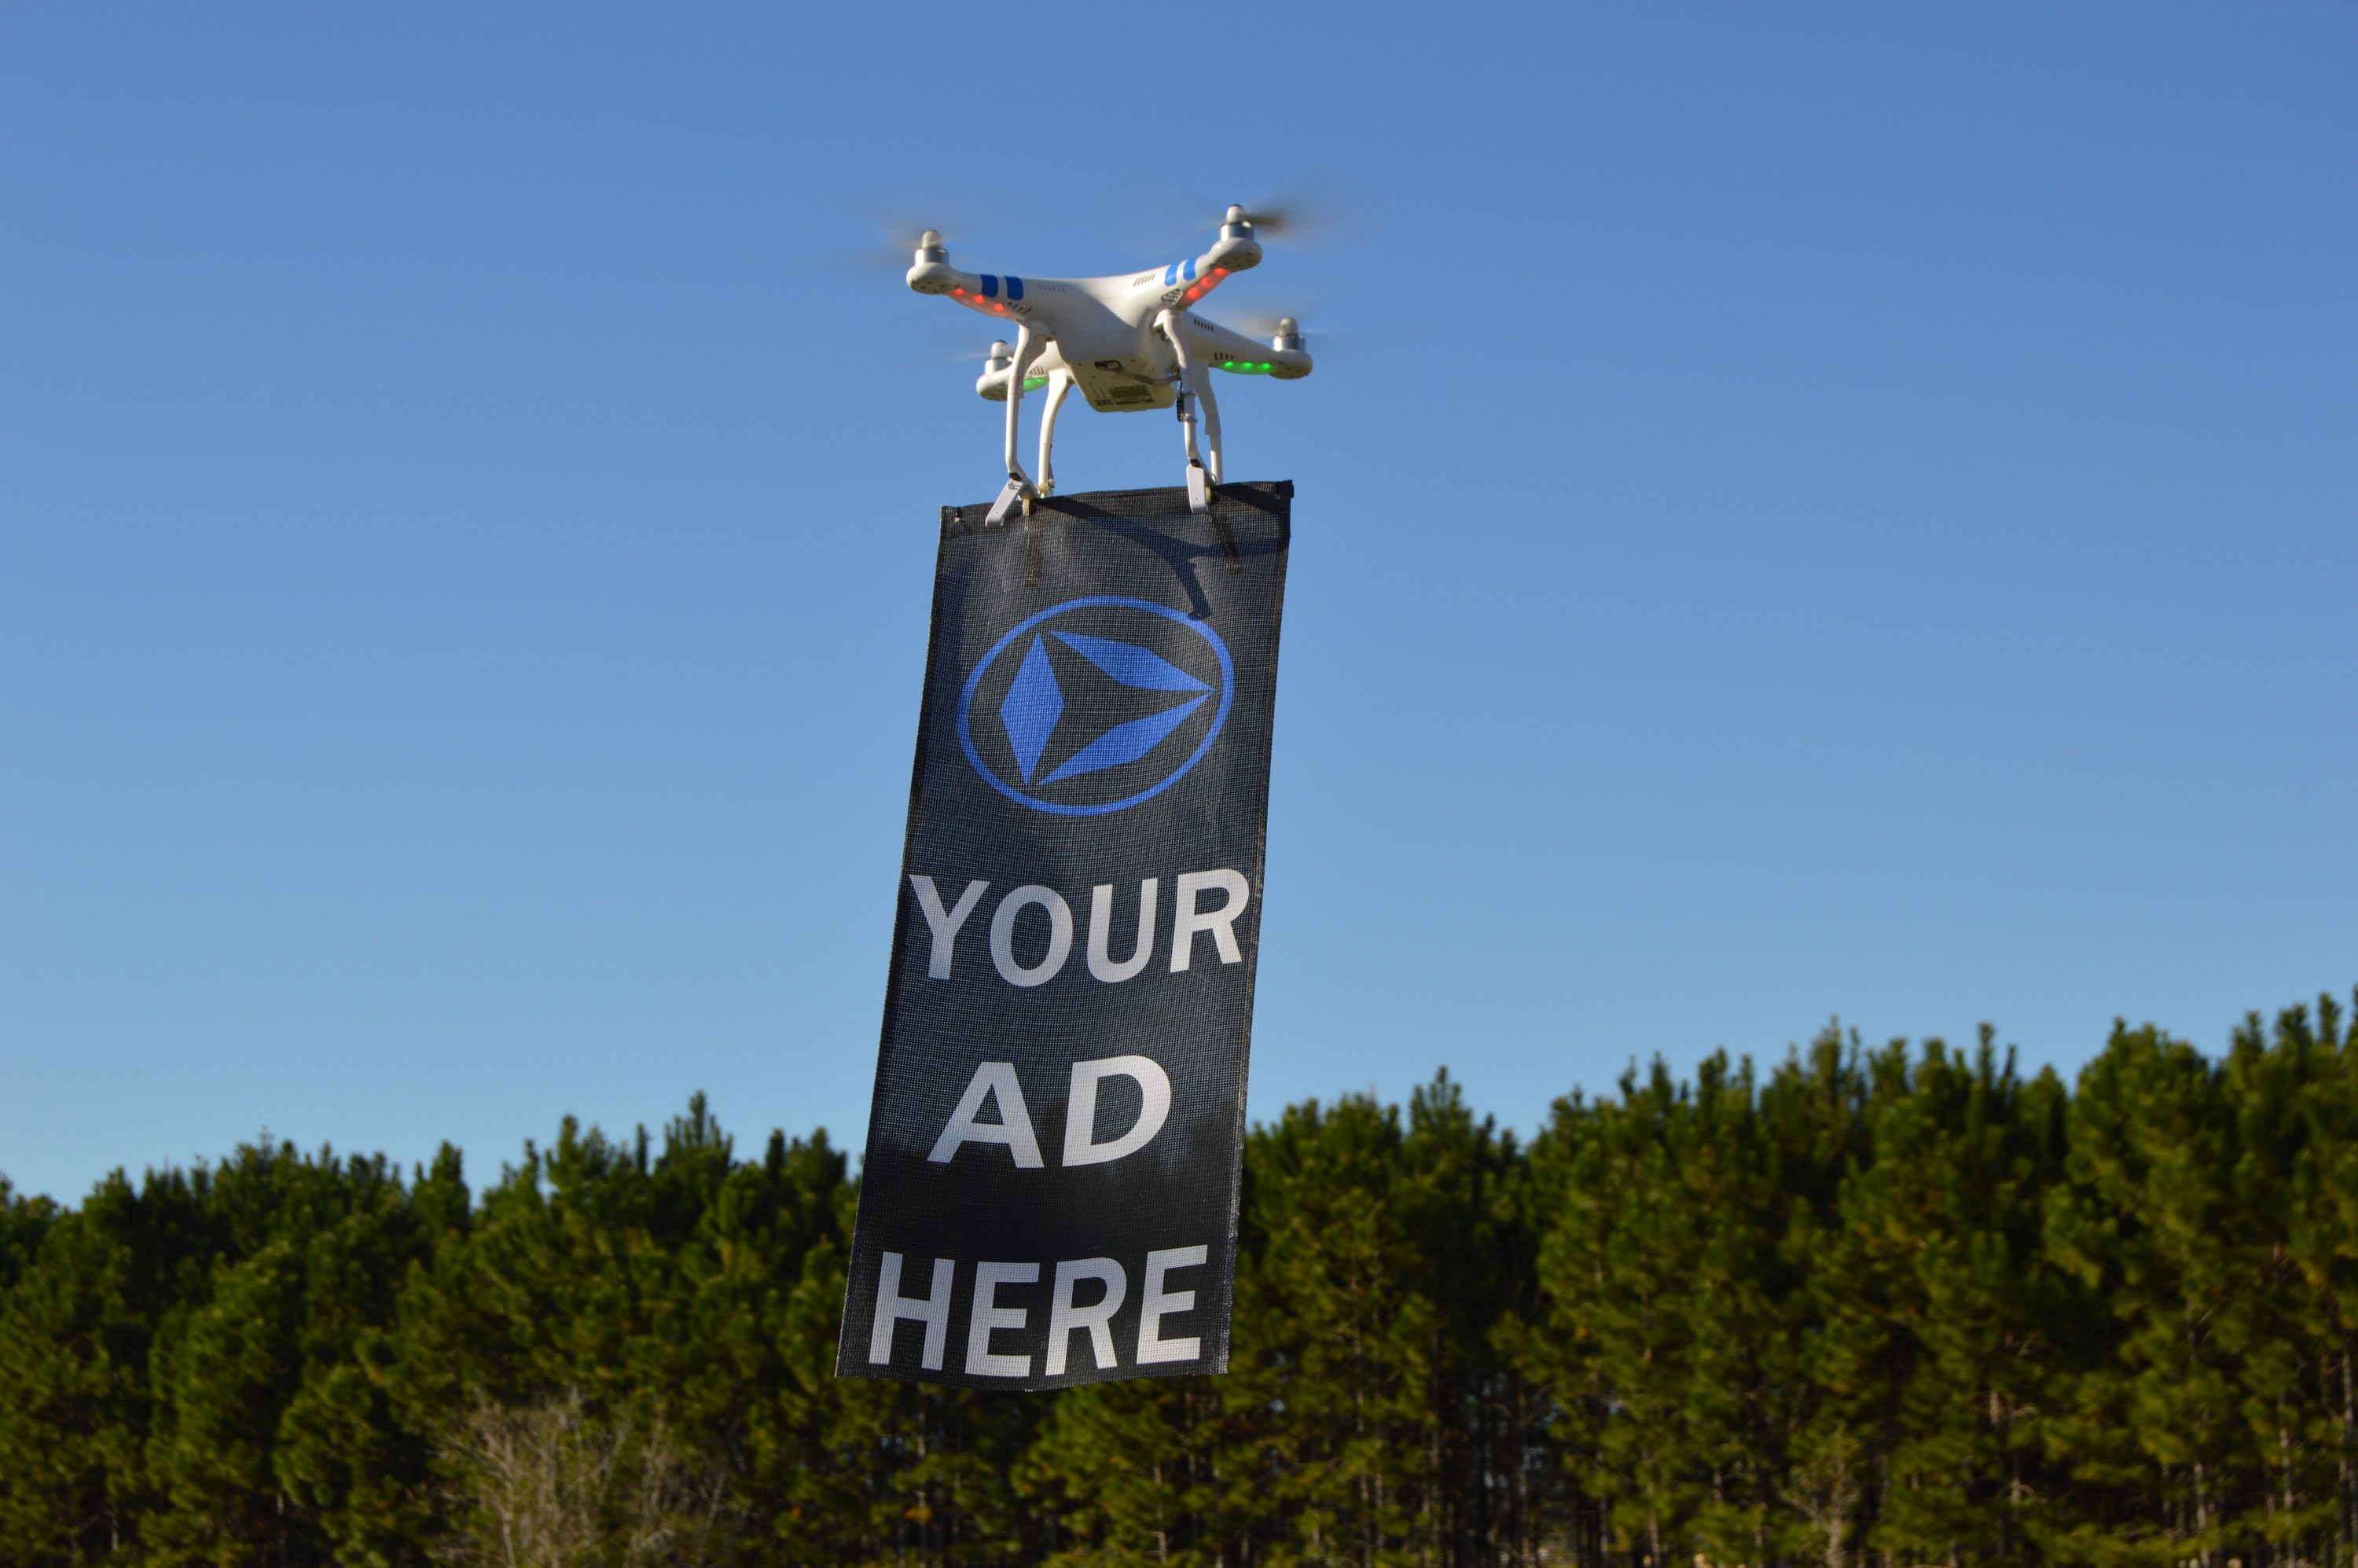 put a banner with a message on a drone